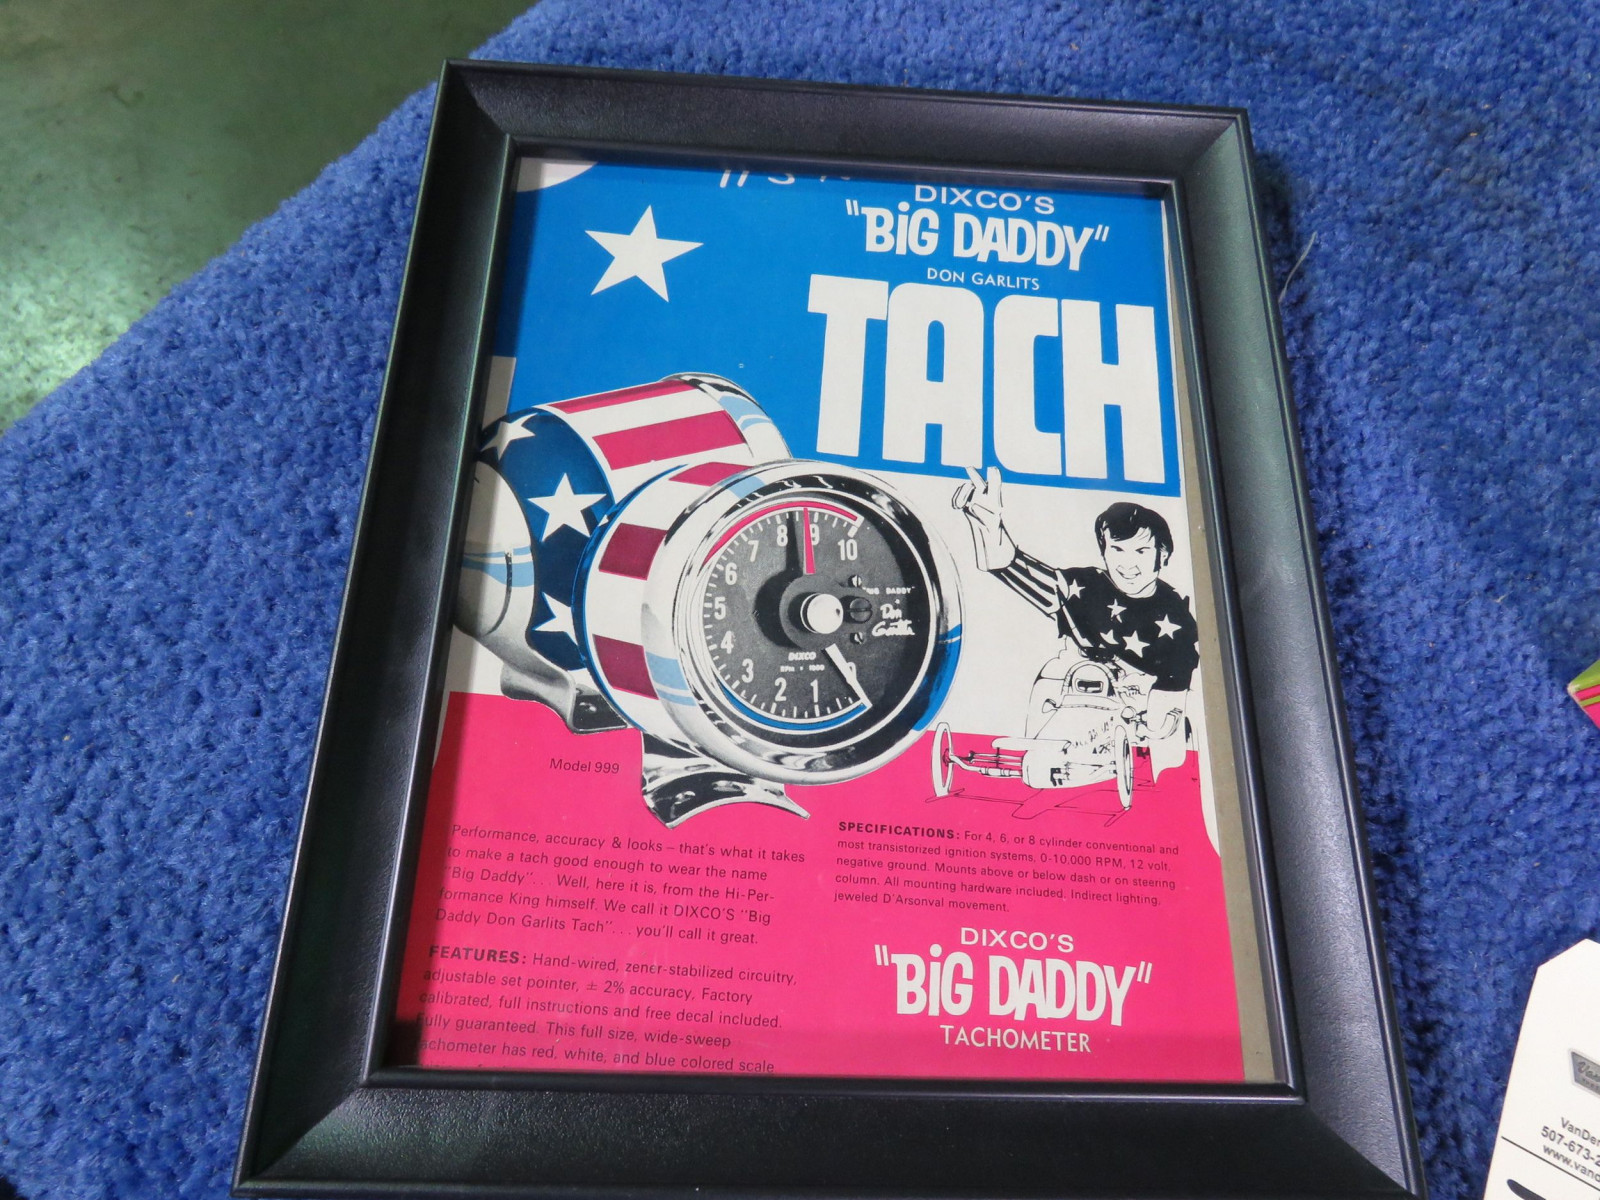 Big Daddy Don Garlitts Dixco Tach with Advertising NIB - Image 2